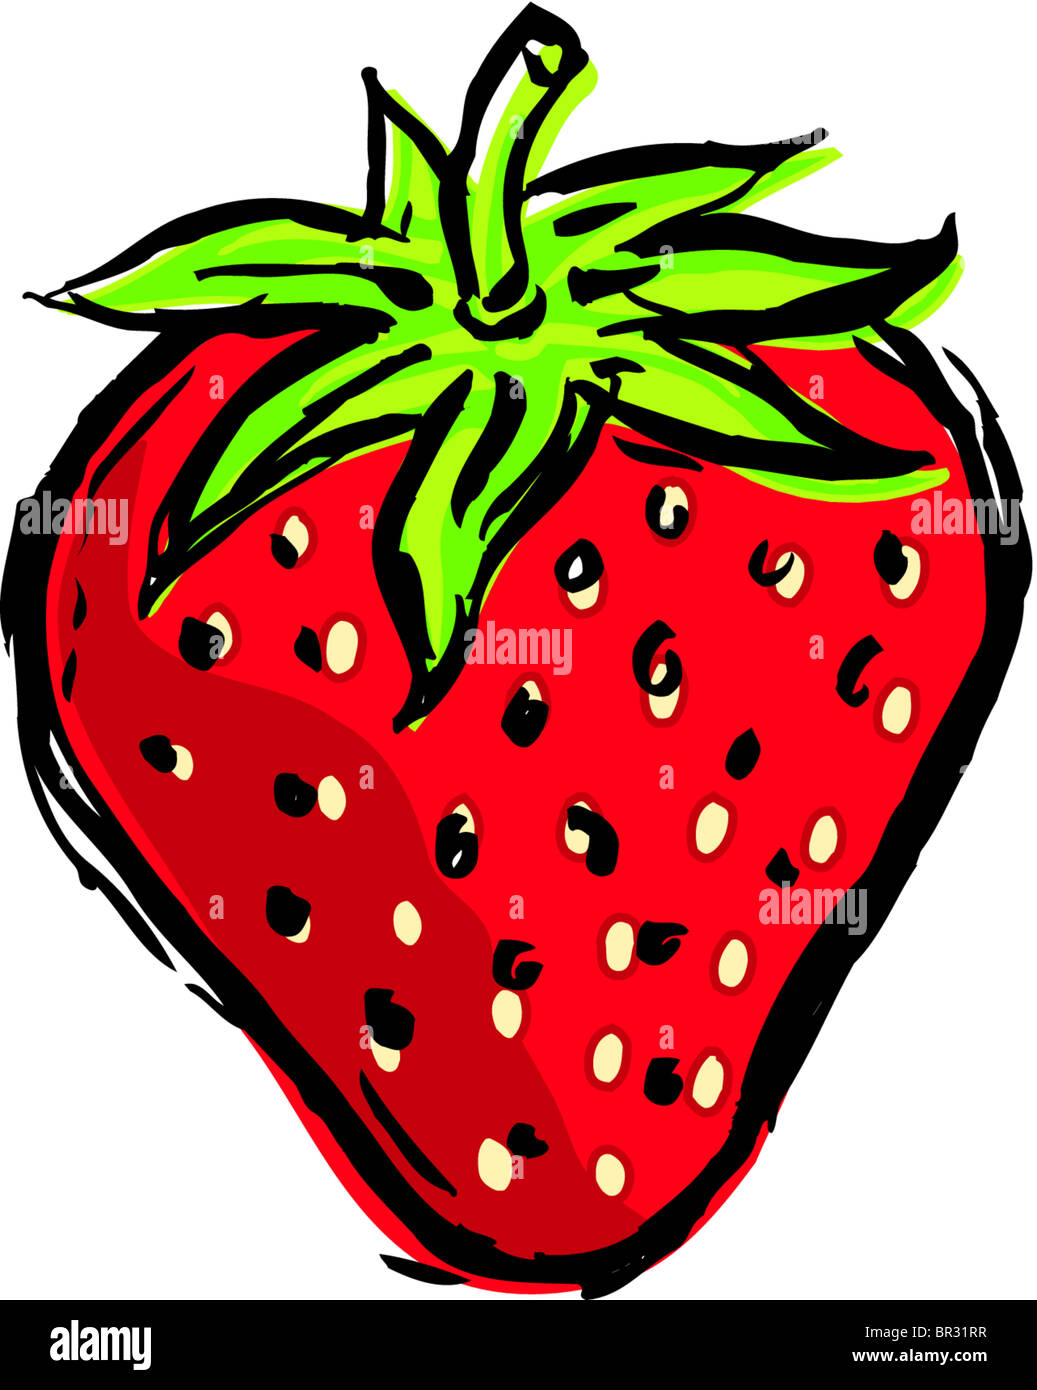 Uncategorized Drawing Of Strawberry a drawing of one red strawberry stock photo royalty free image strawberry